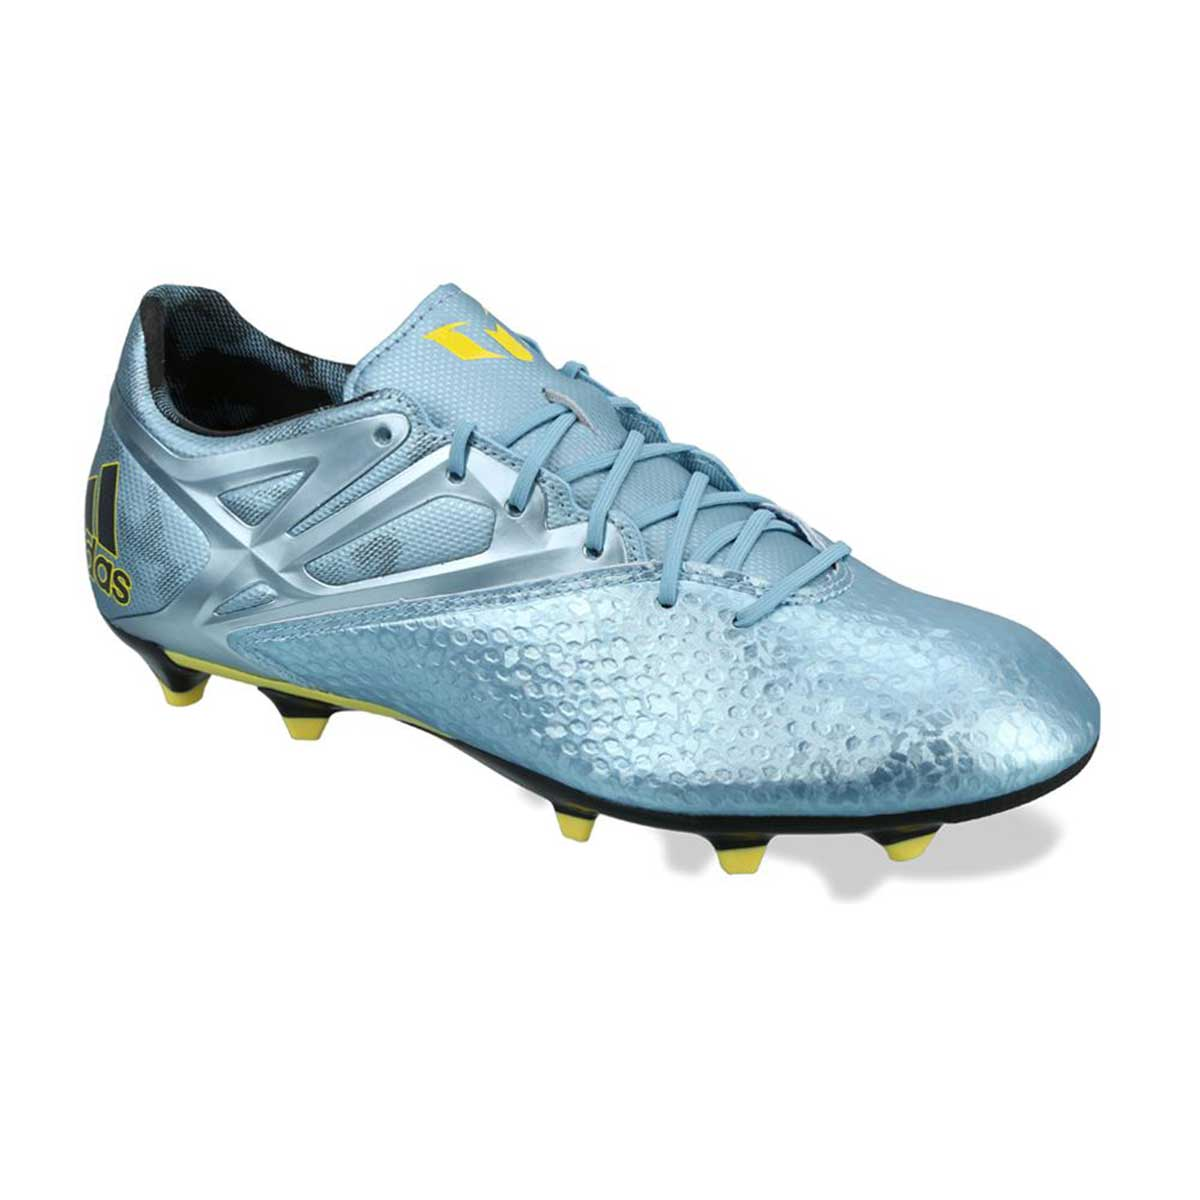 60d4a514cd82 Buy Adidas Messi 15.2 FG AG Football Shoes Online in India